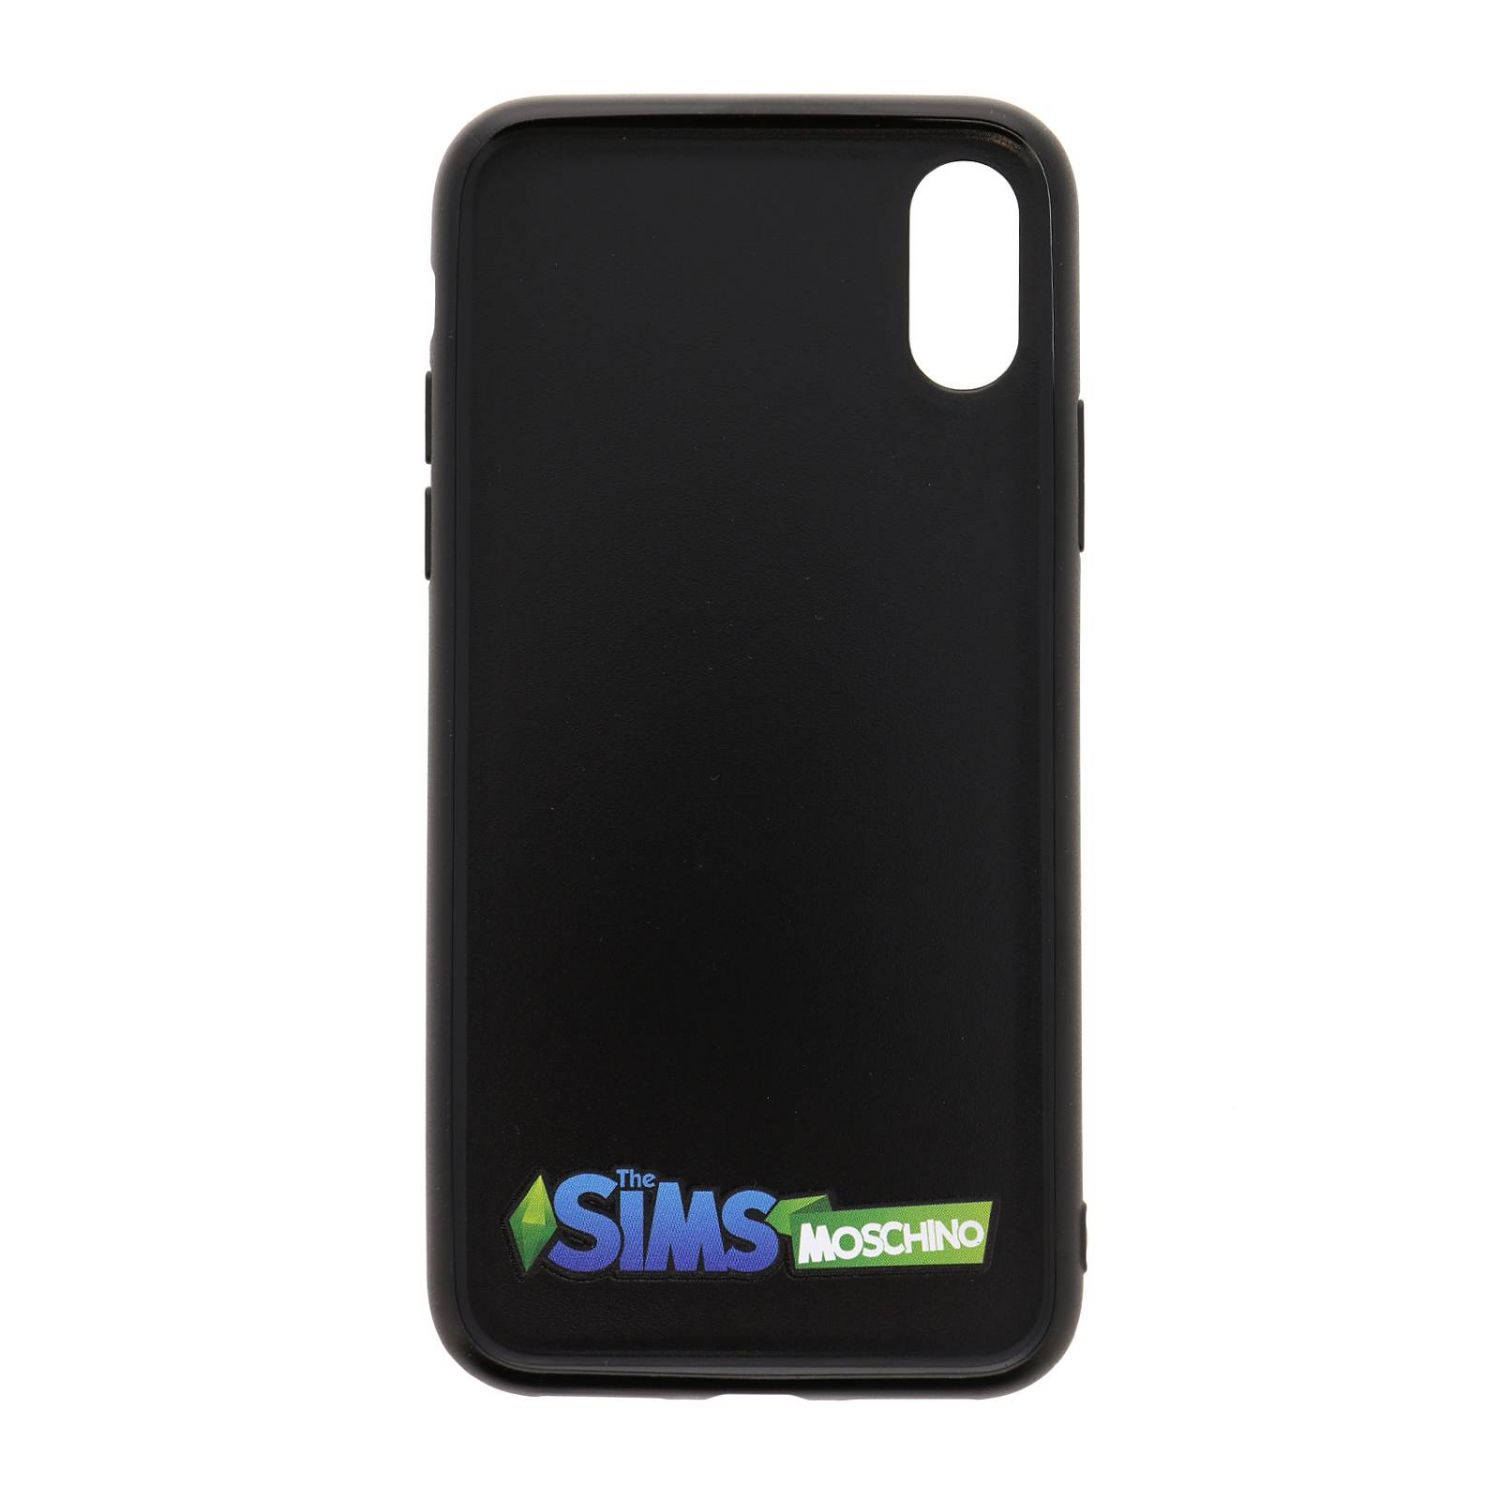 Cover Moschino Capsule Collection Pixel The Sims per Iphone Xs/X bianco 2